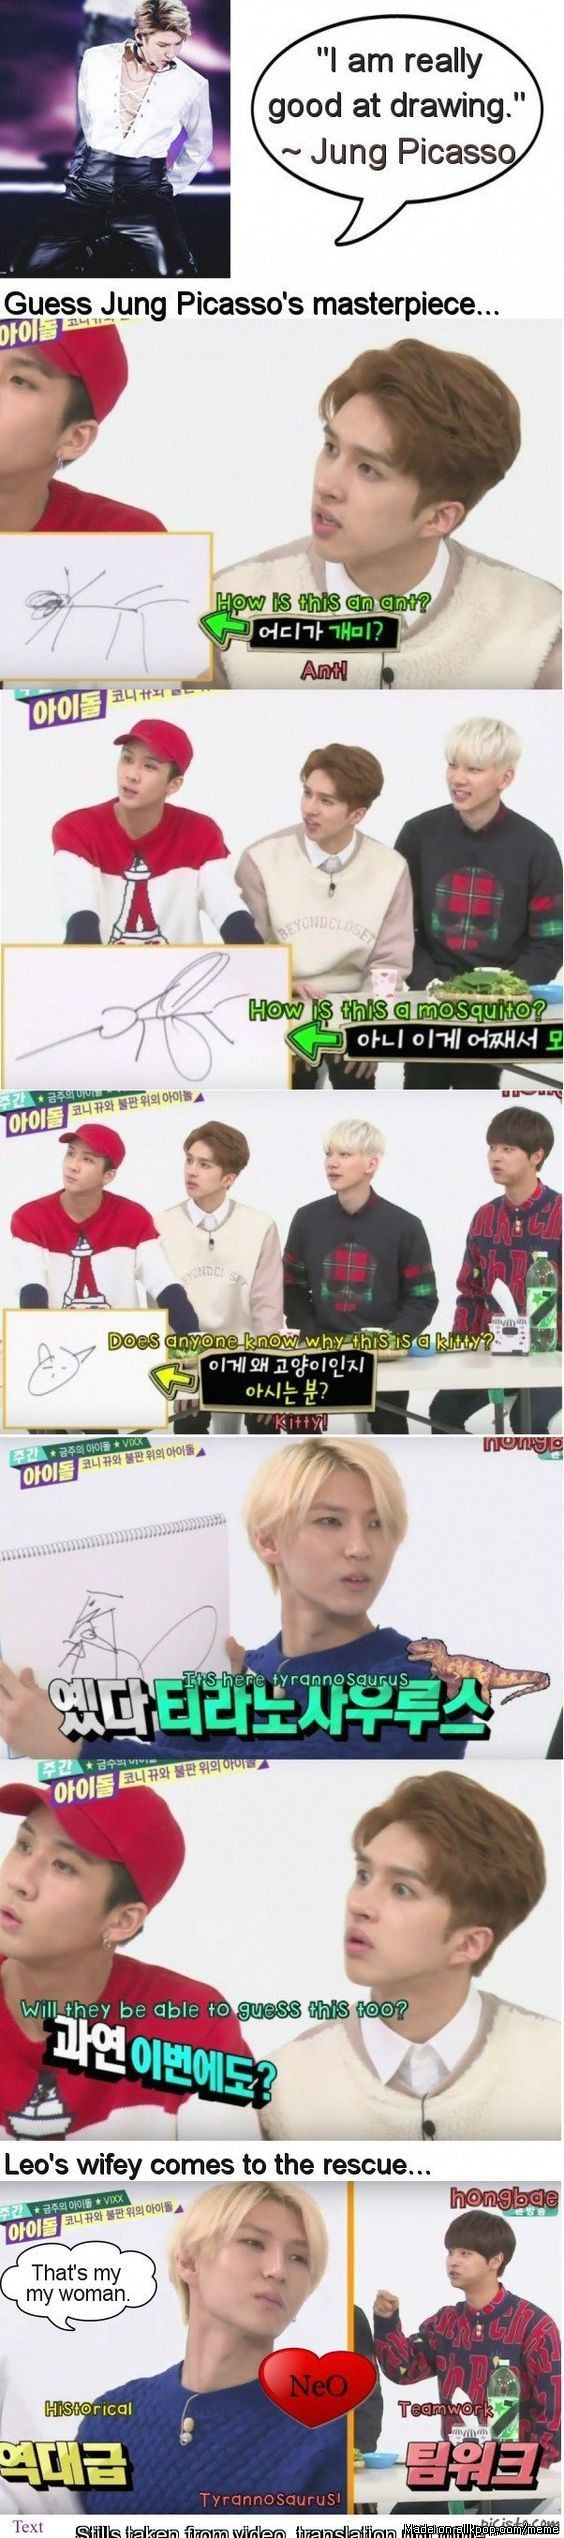 Leo and his drawings